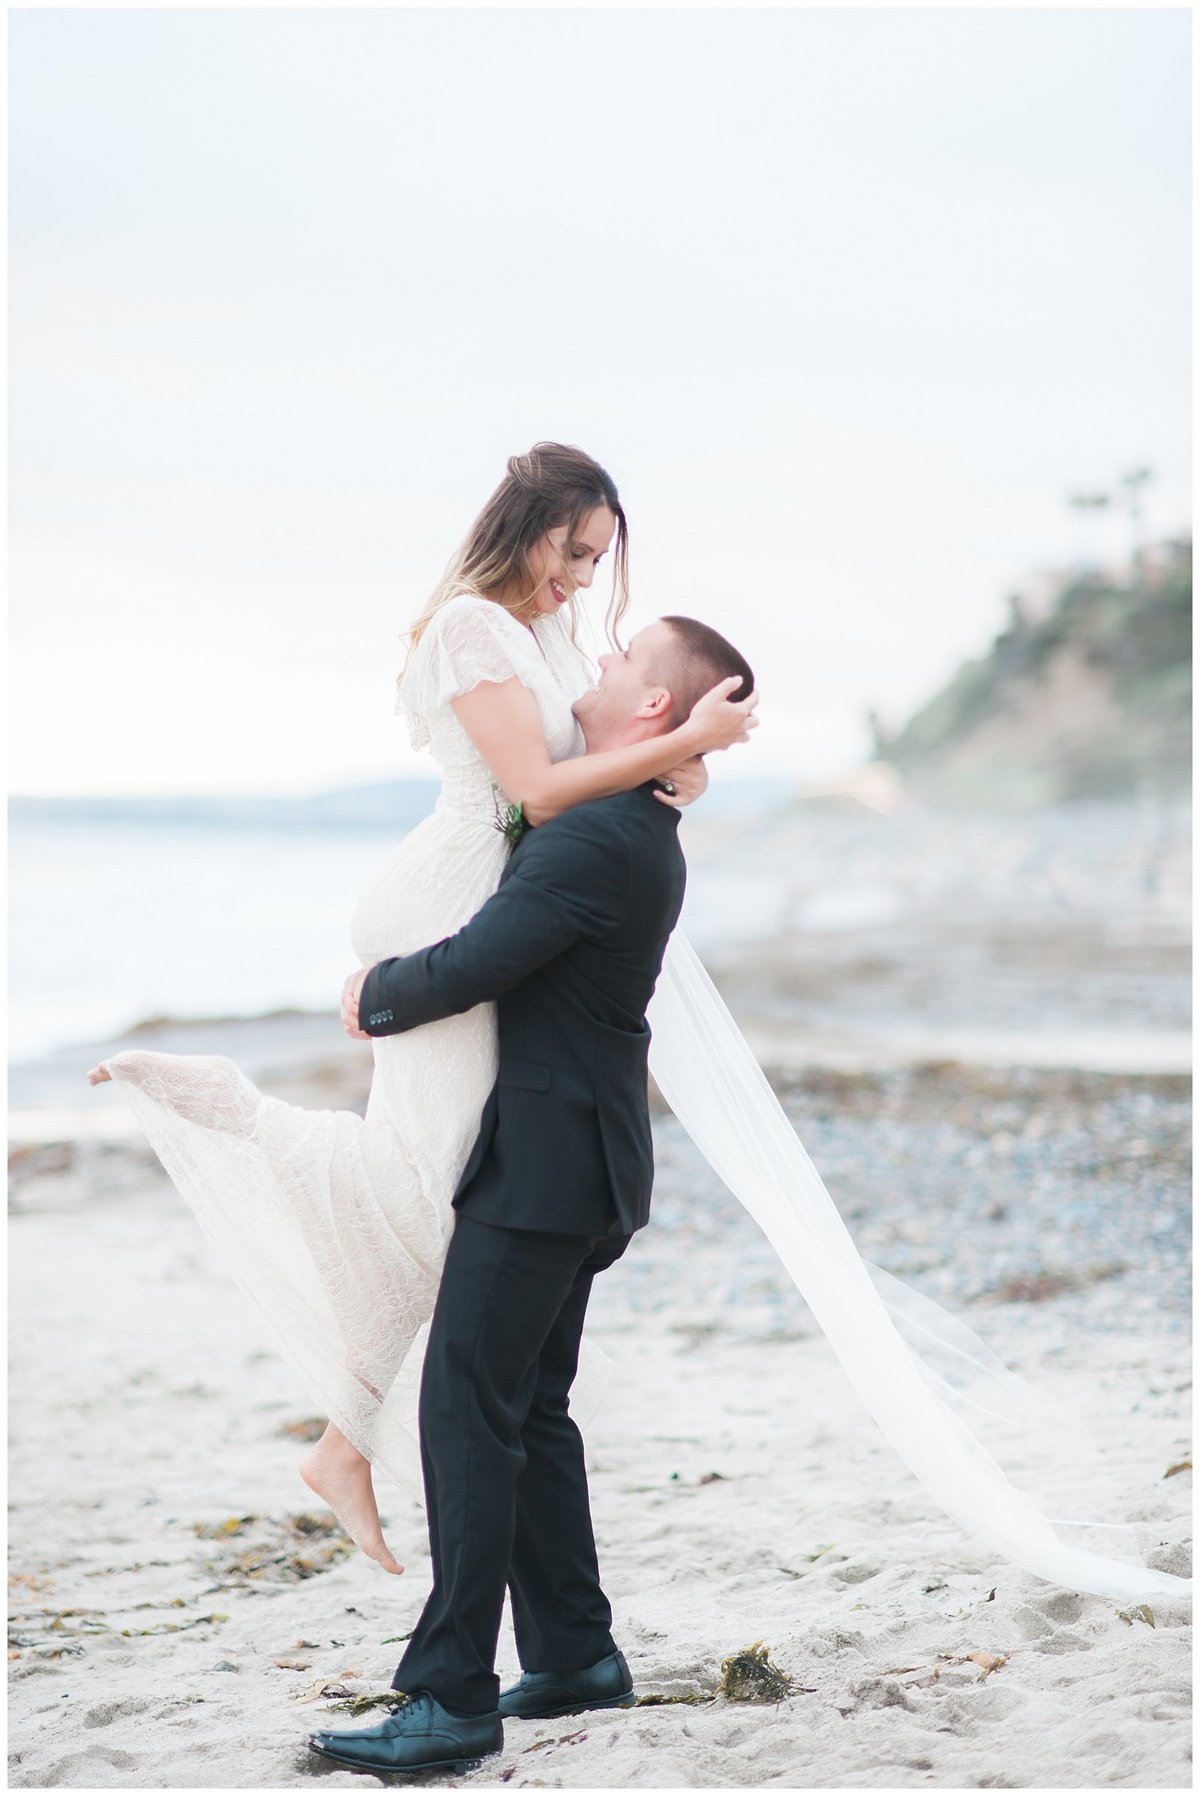 san clemente beach wedding elopement whimsical dreamy soft light socal photo036